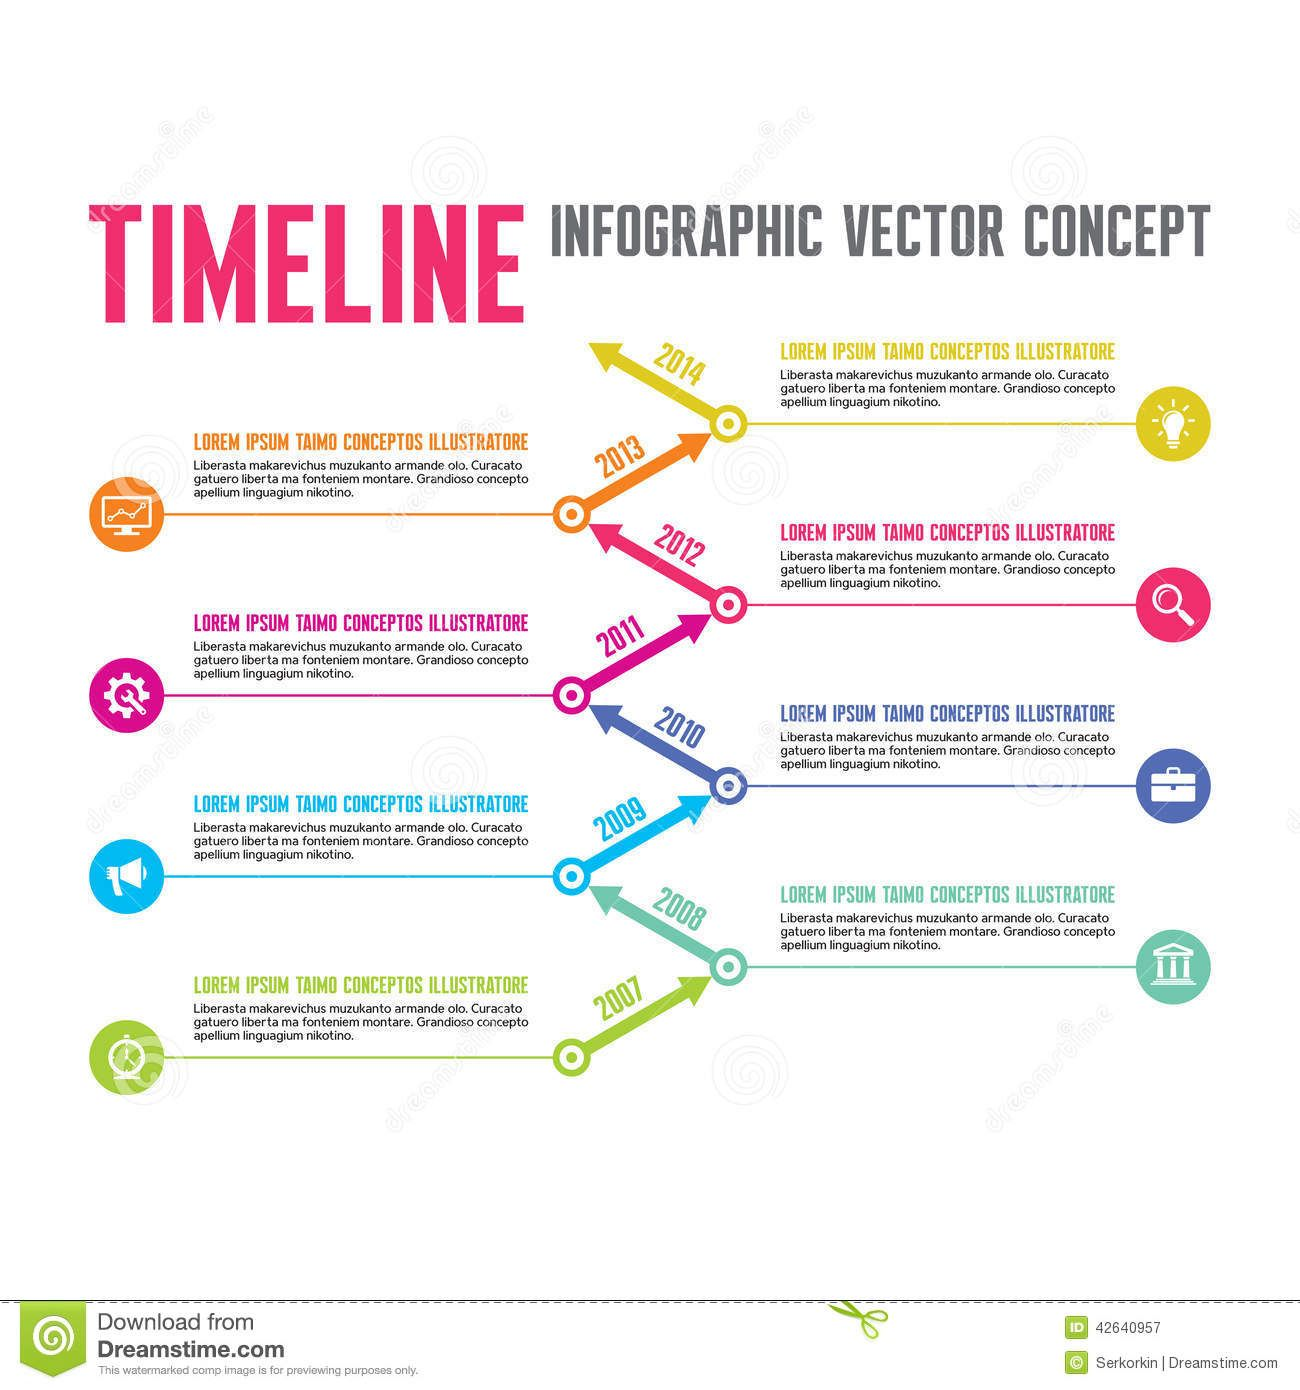 Infographic Vector Concept In Flat Design Style